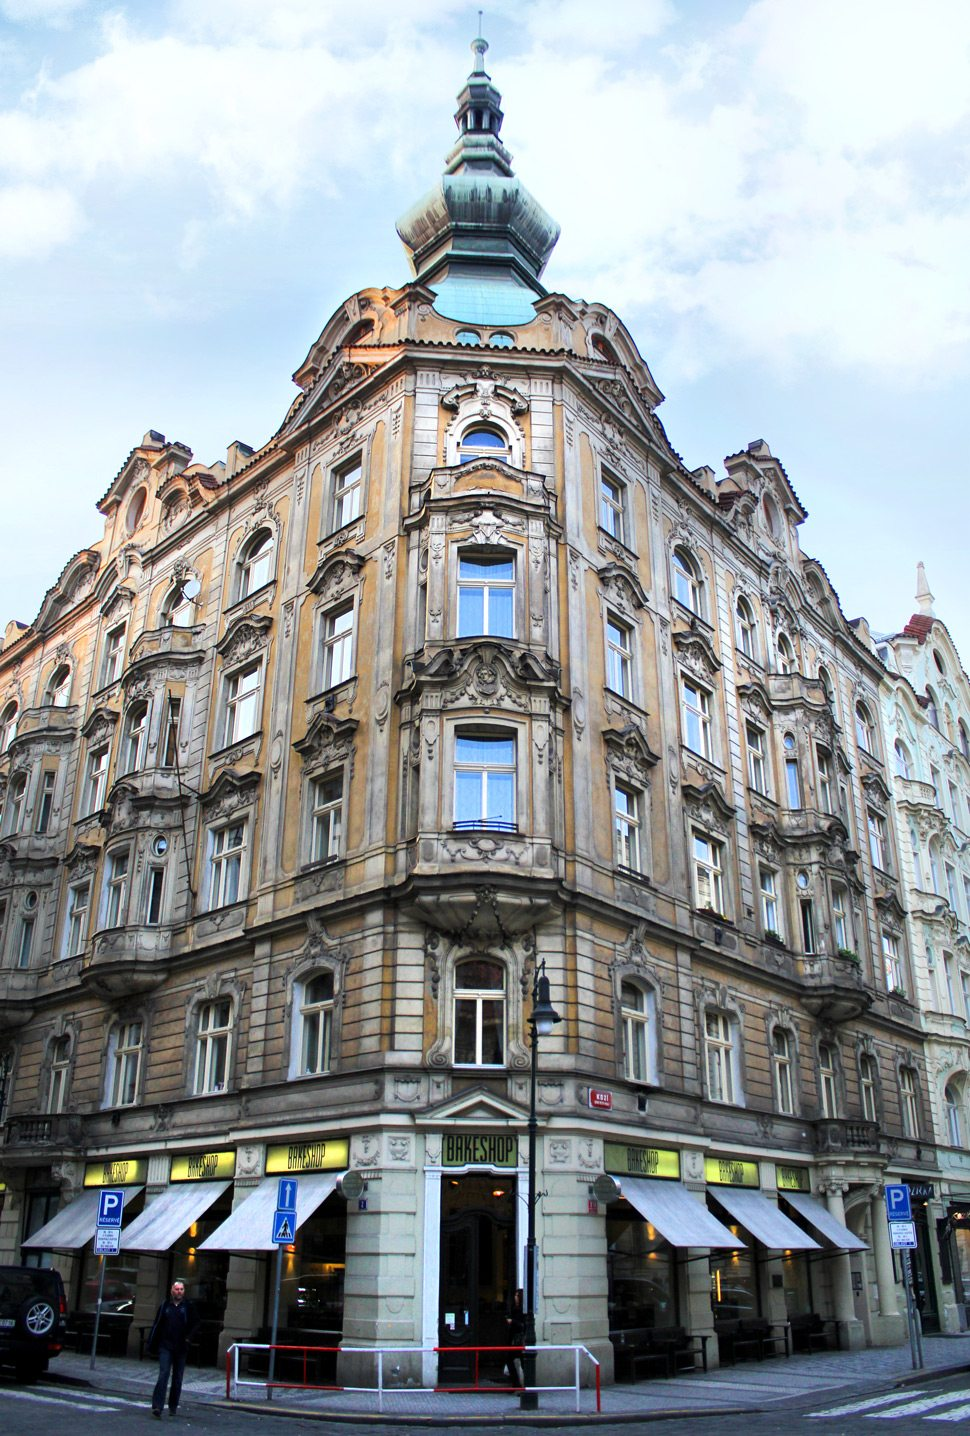 Architecture in Old Town Prague